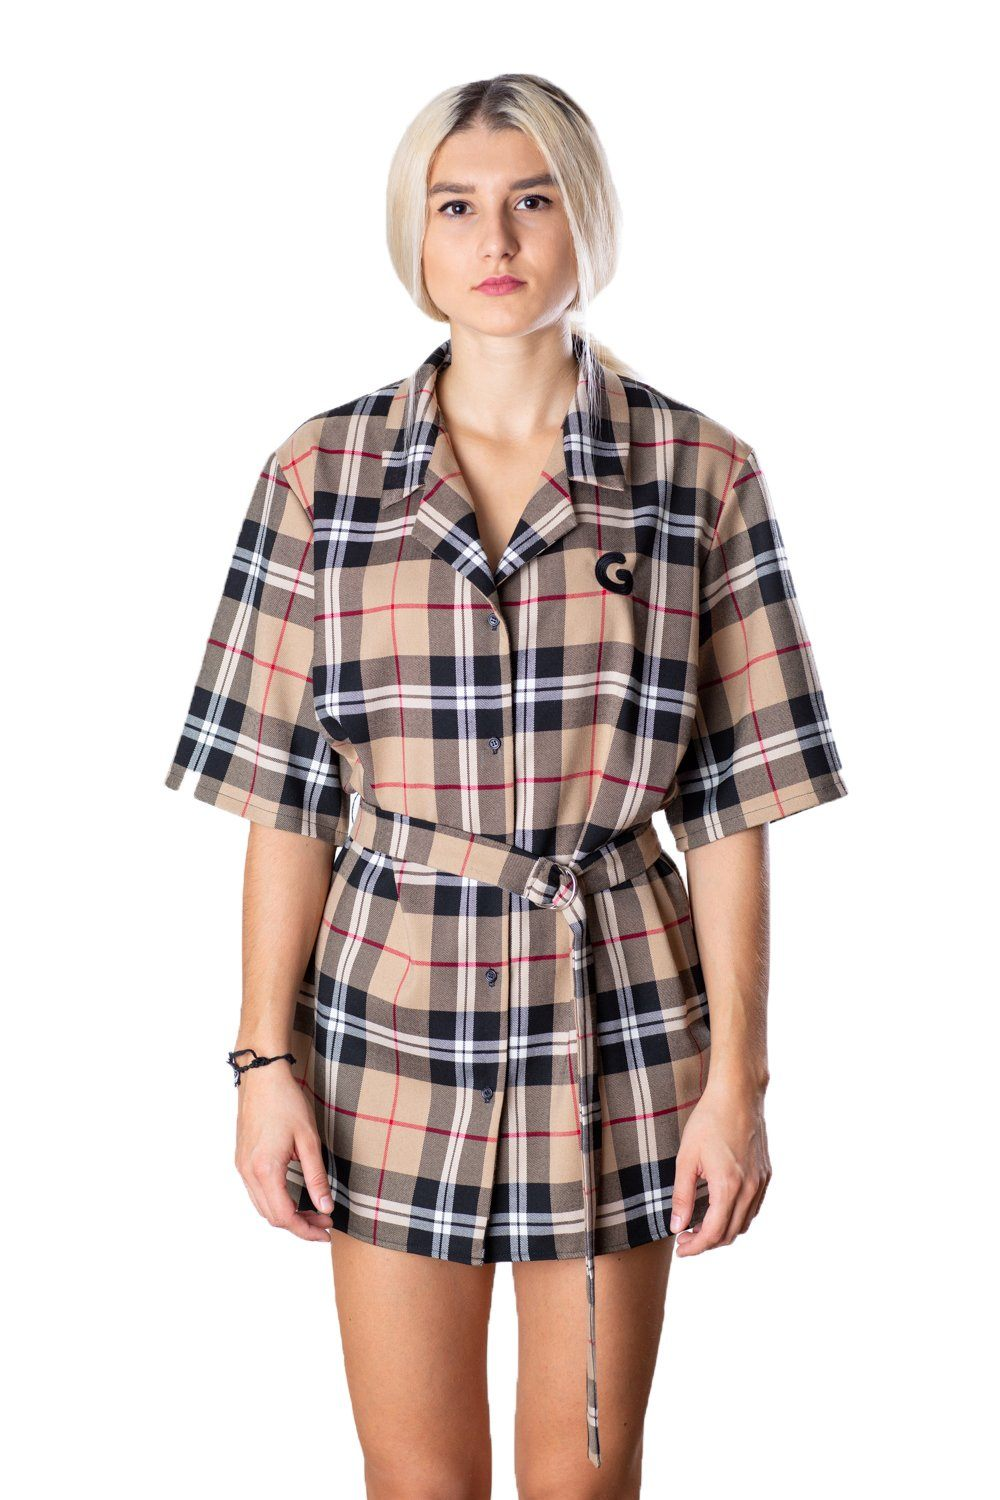 Tartan Woman Dress // burberry